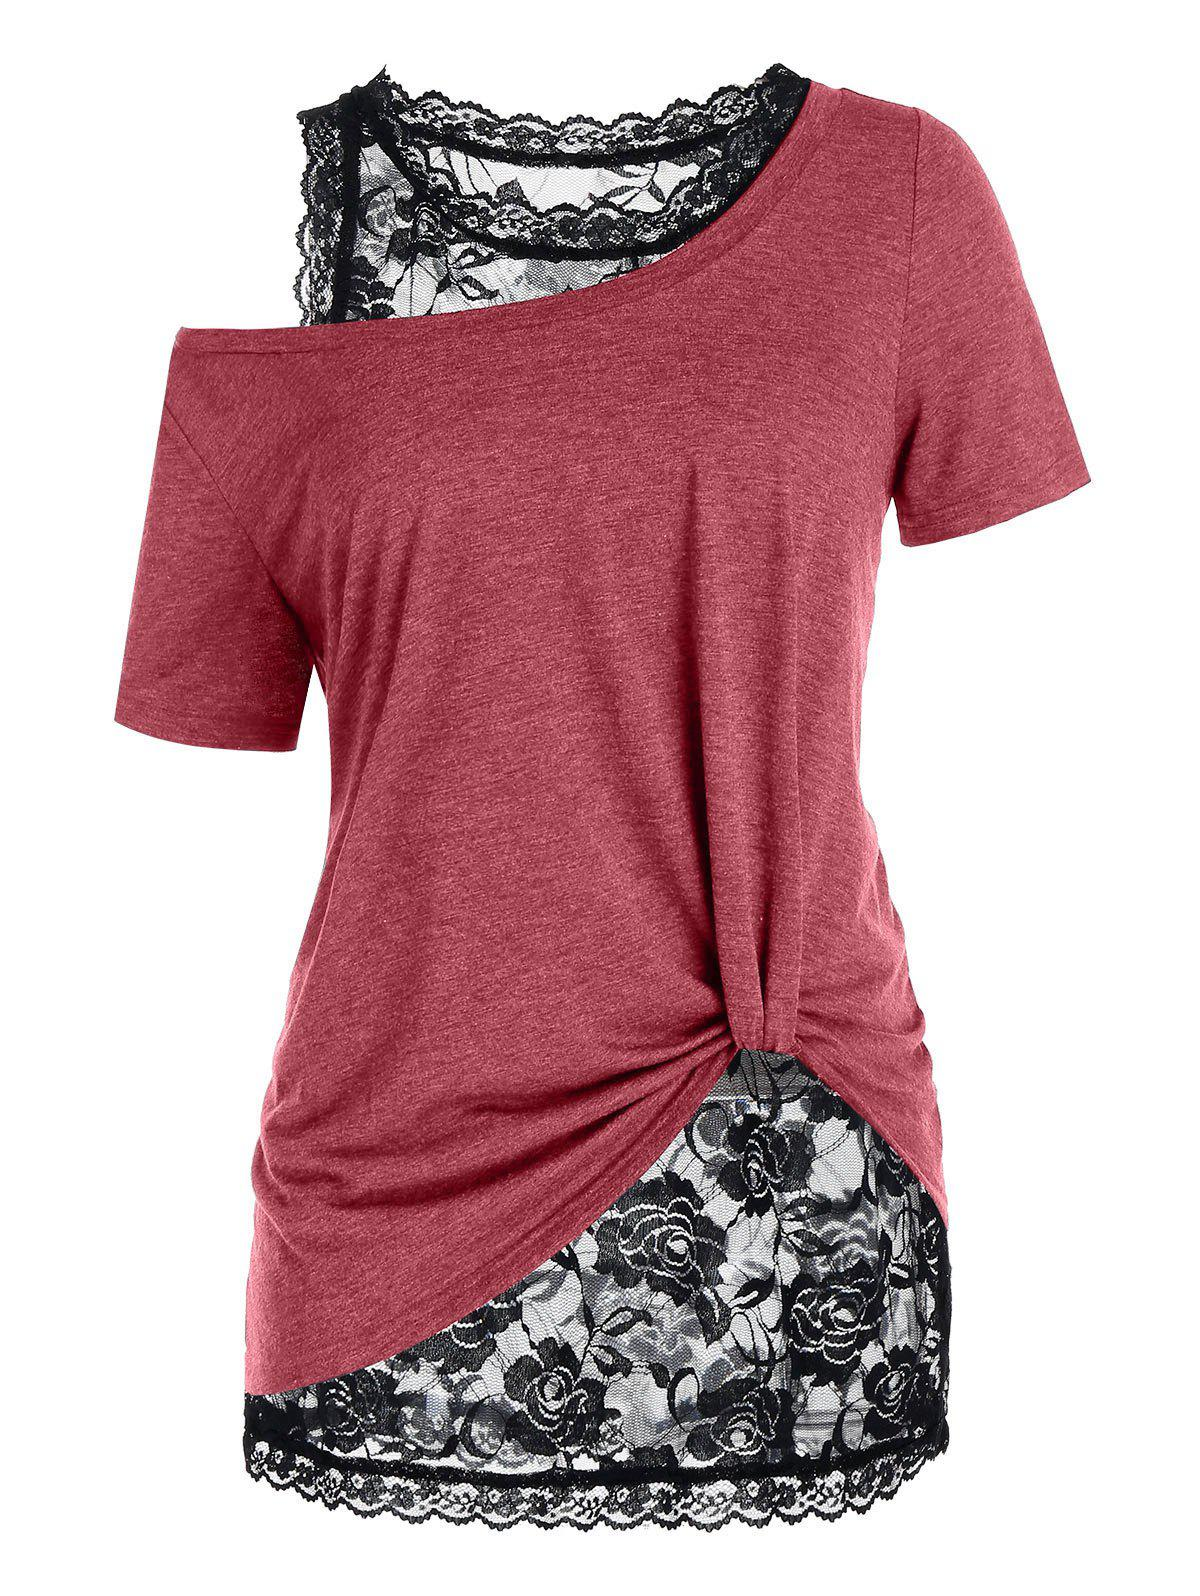 Plus Size Skew Collar T Shirt with Lace Tank Top фото